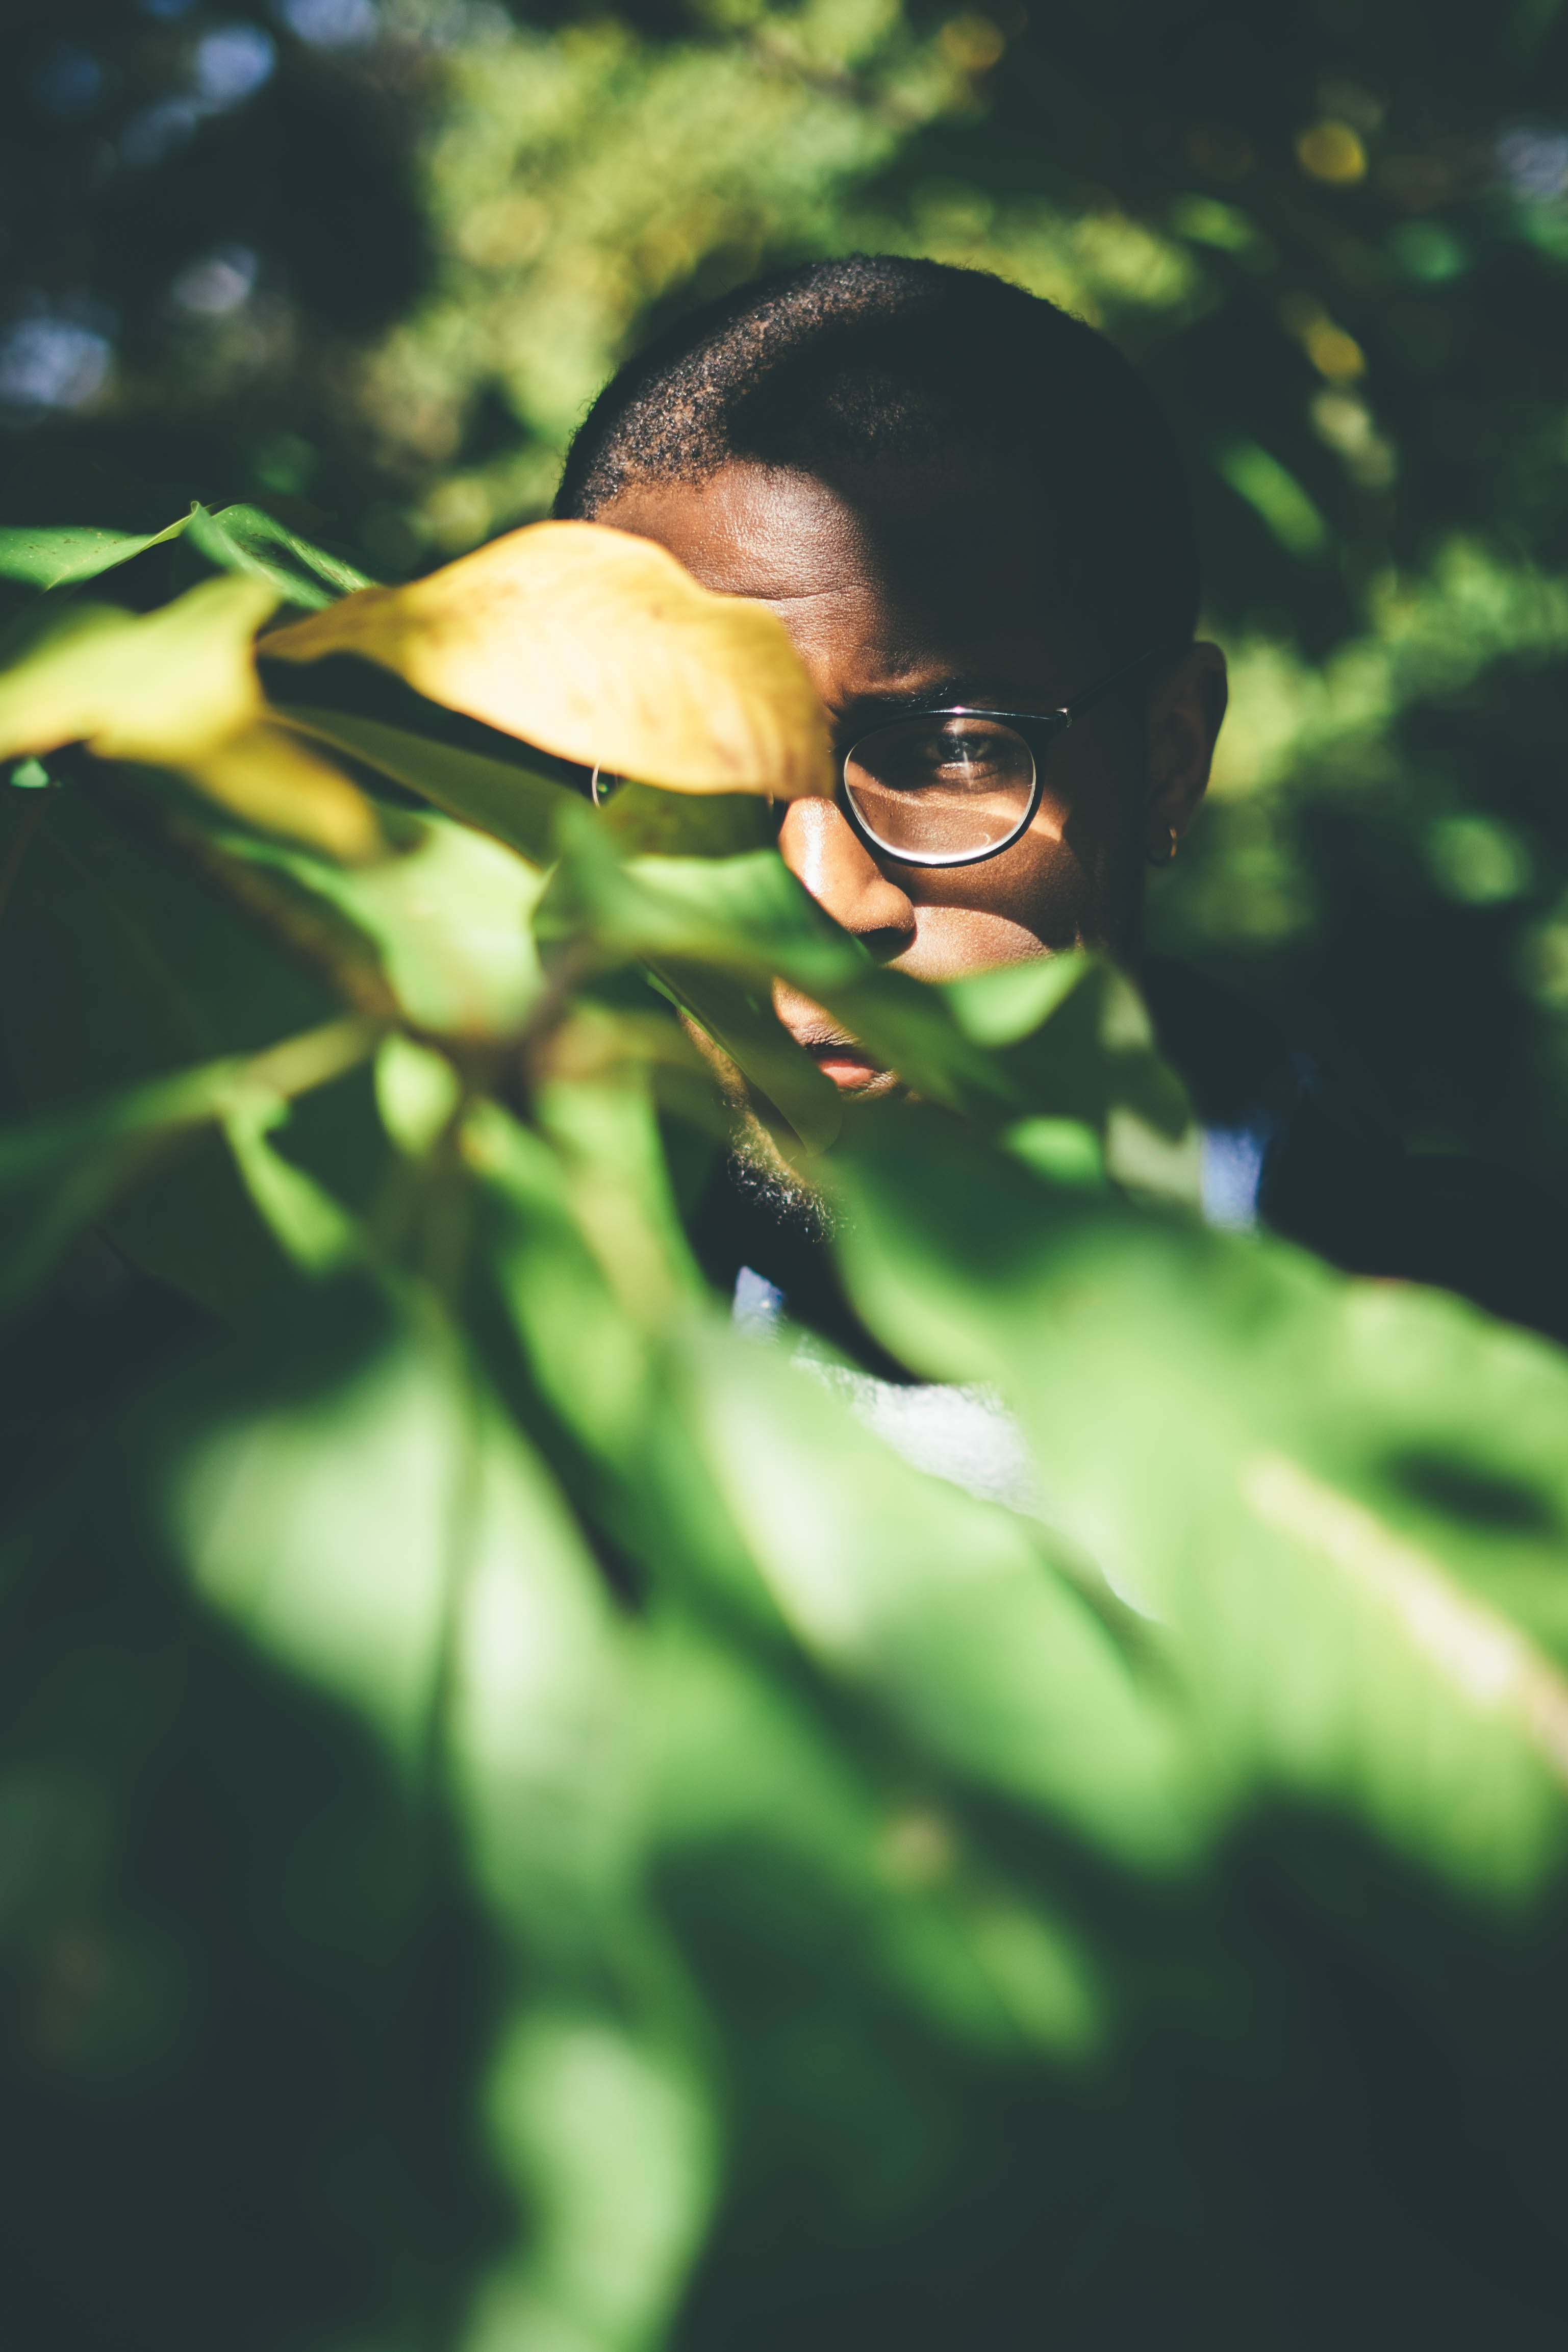 man in black eyeglasses behind plant leaf at daytime